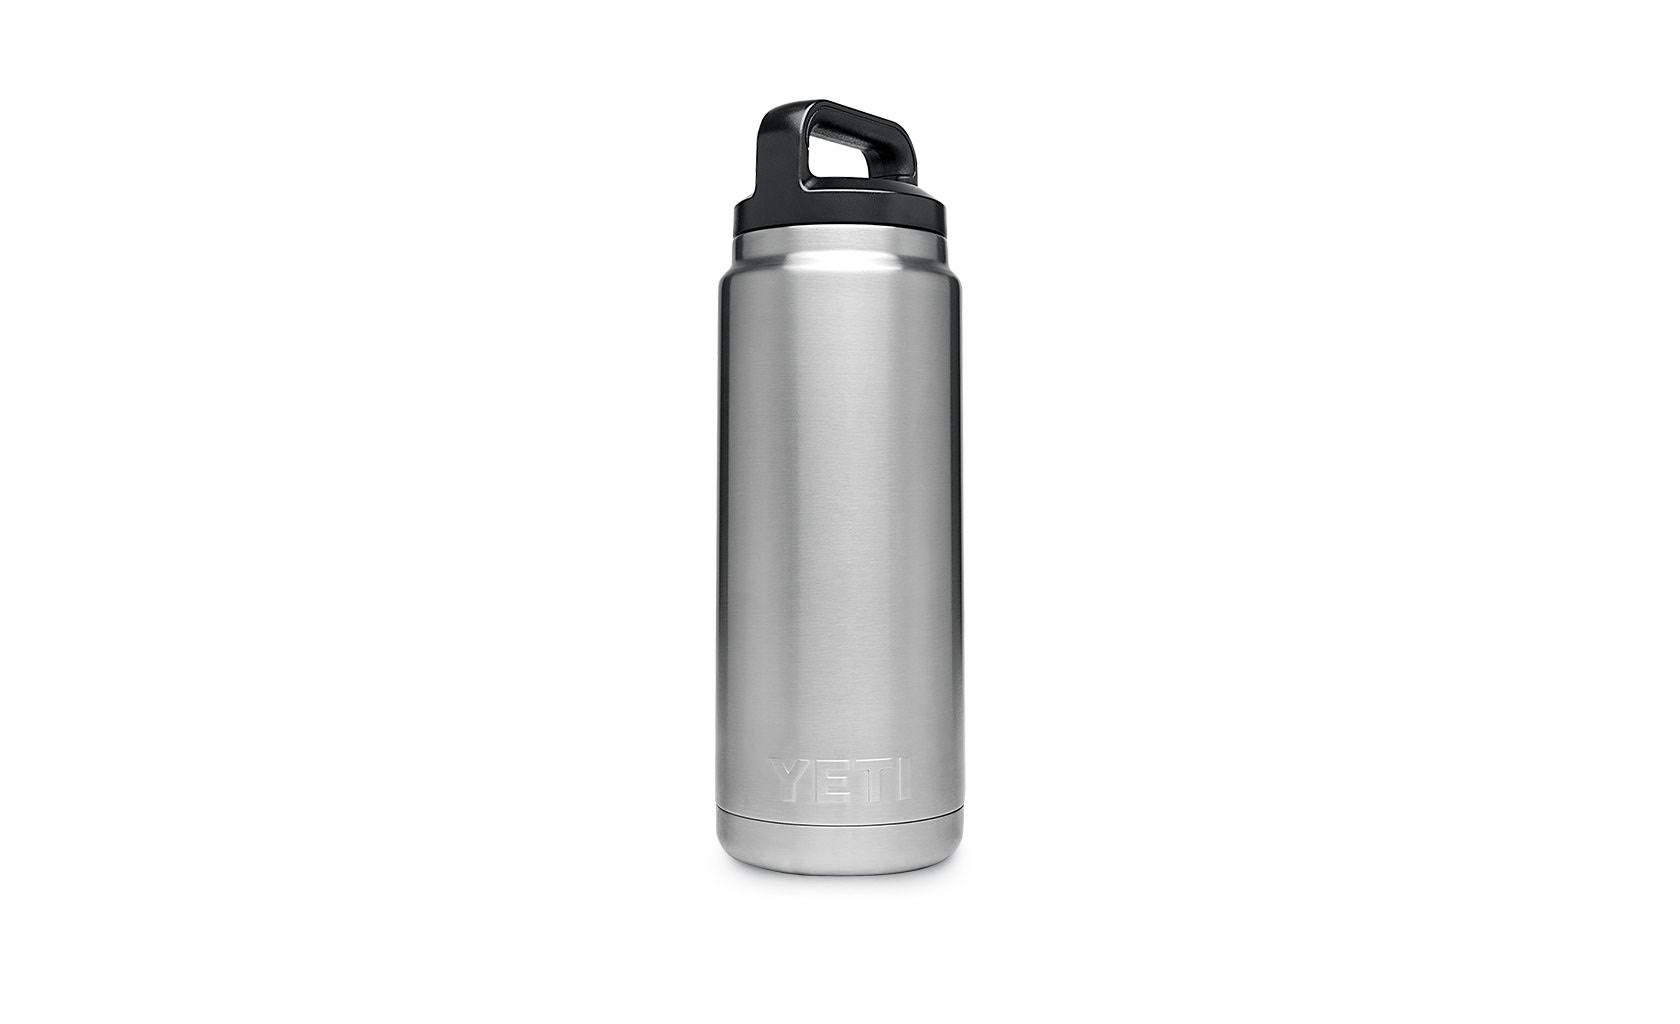 Yeti Rambler Vacuum Insulated Stainless Steel Bottle - 26oz